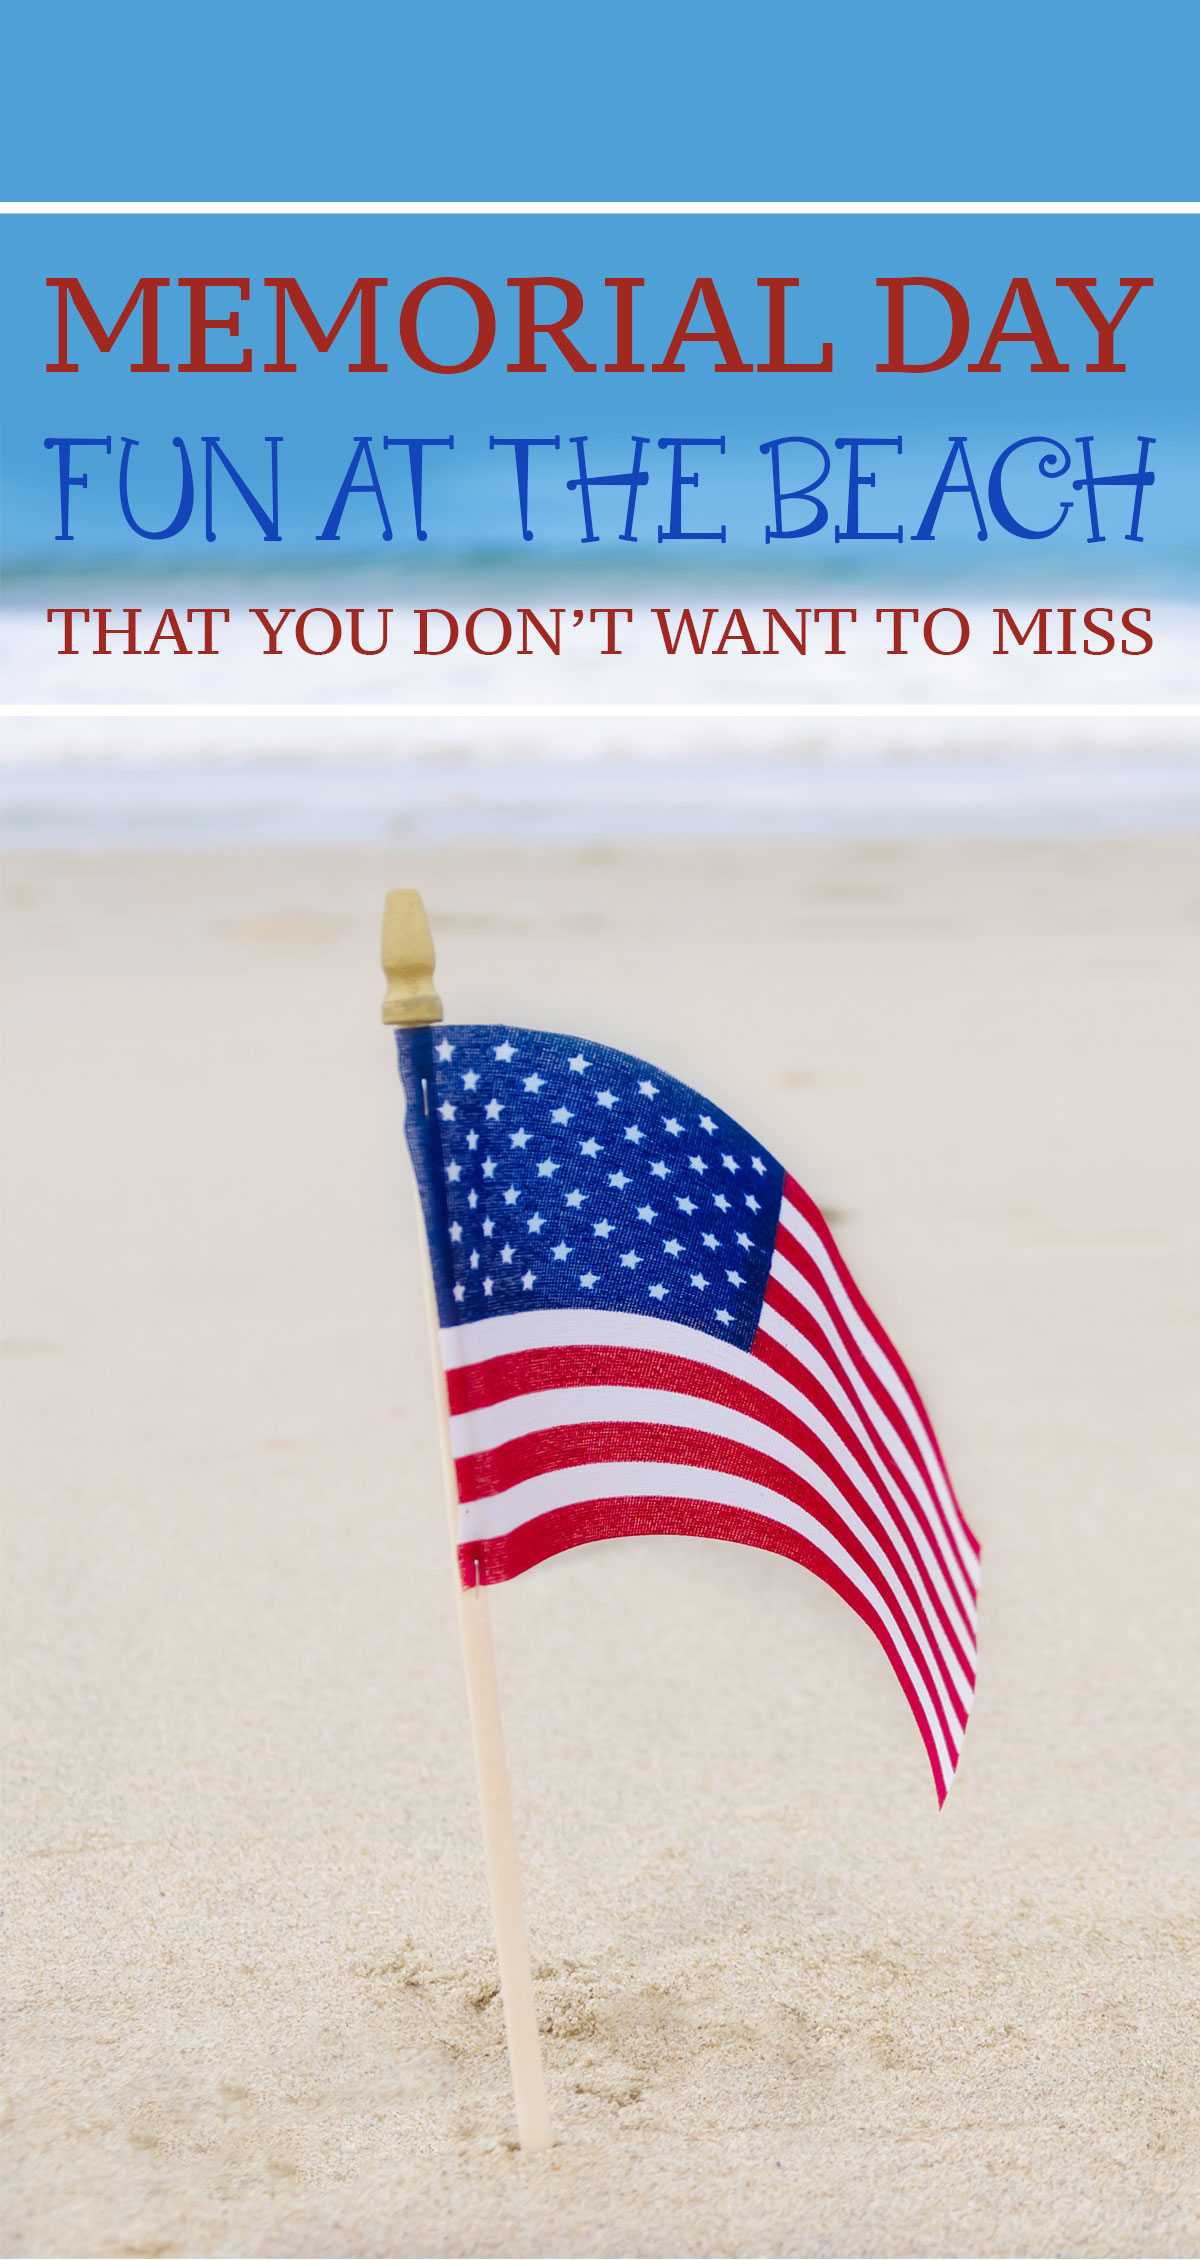 Memorial Day Fun at the Beach That You Don't Want to Miss Pin